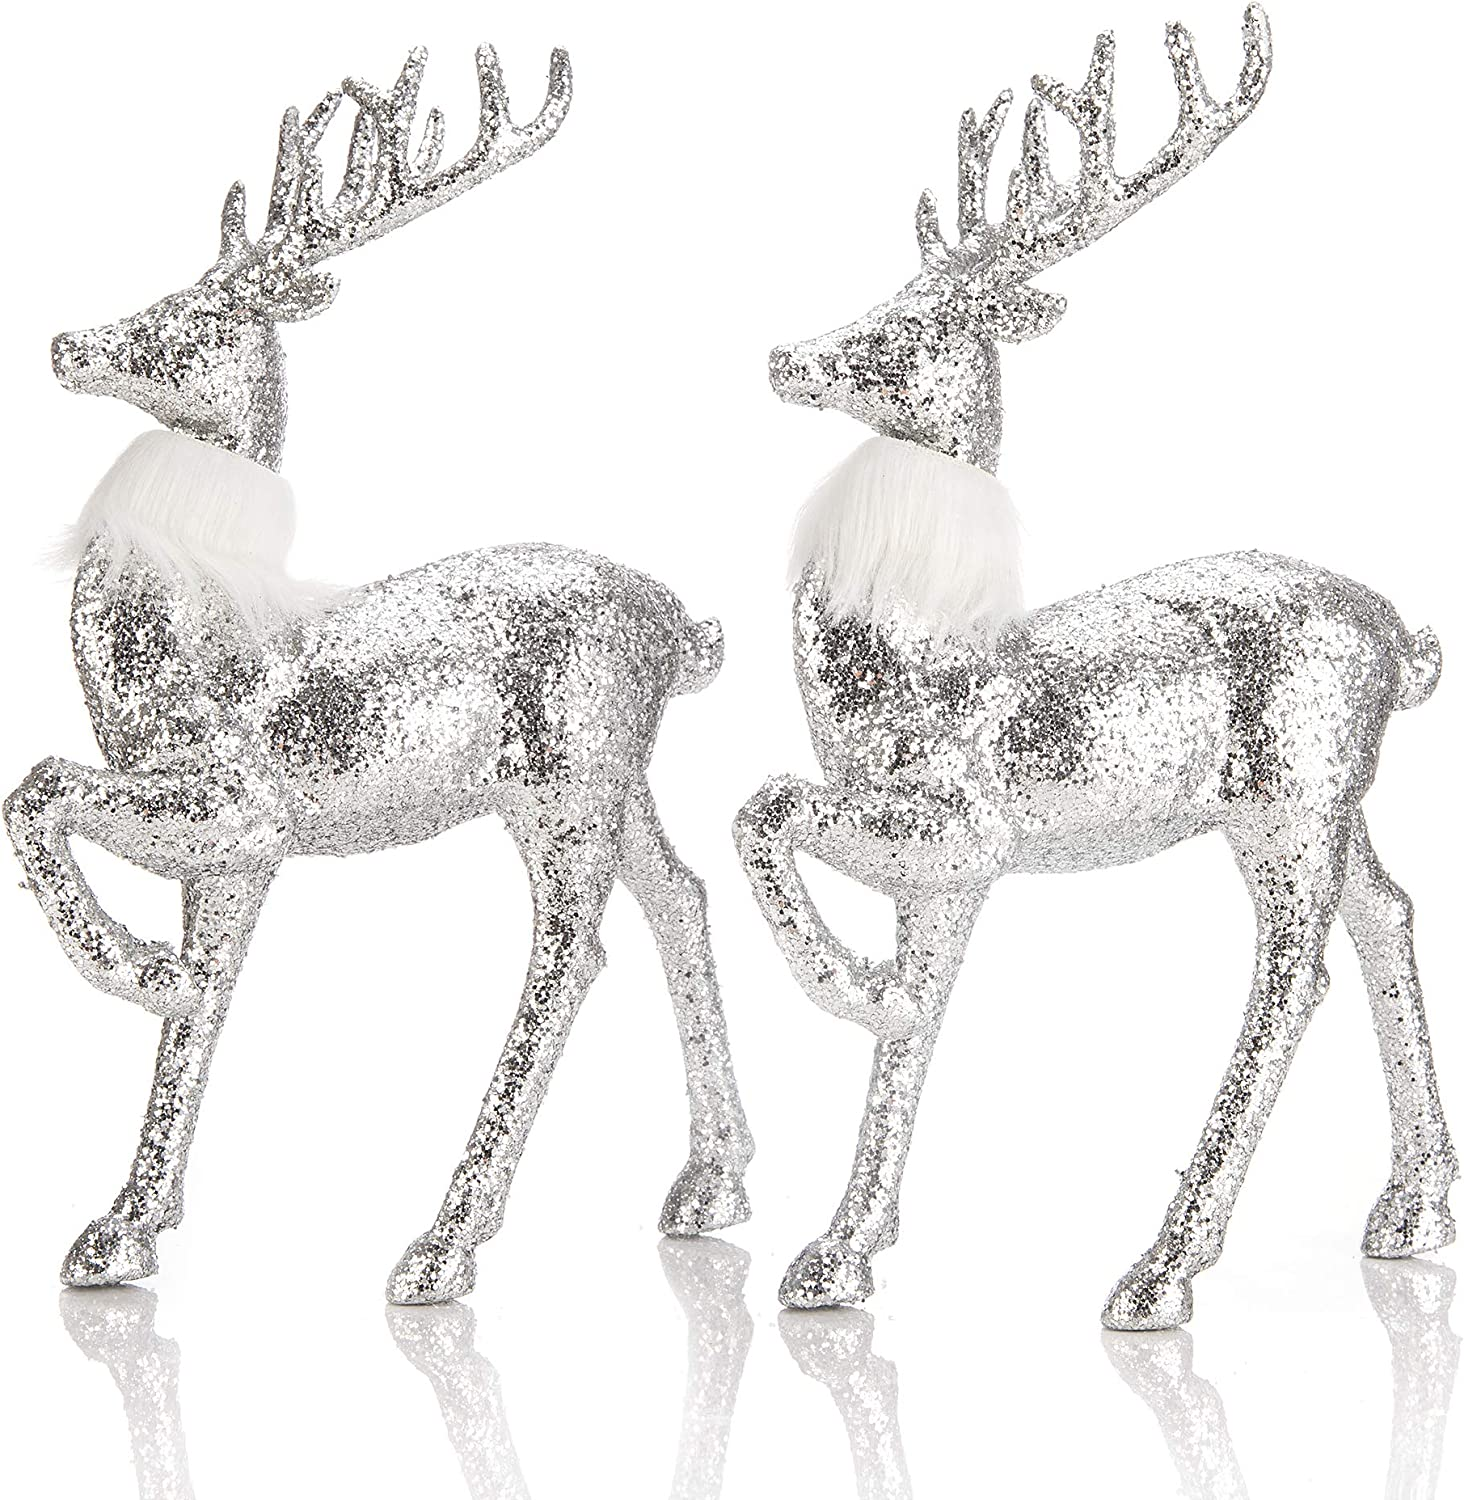 blitzlabs Christmas Silver Sequined Glitter Reindeer Indoor Homely Creative Articles Deer Ornament Figurines Freestanding for Living Room, Tabletop, Kitchen ,Mantle, Shelf ,Desk Winter Decor,Set of 2